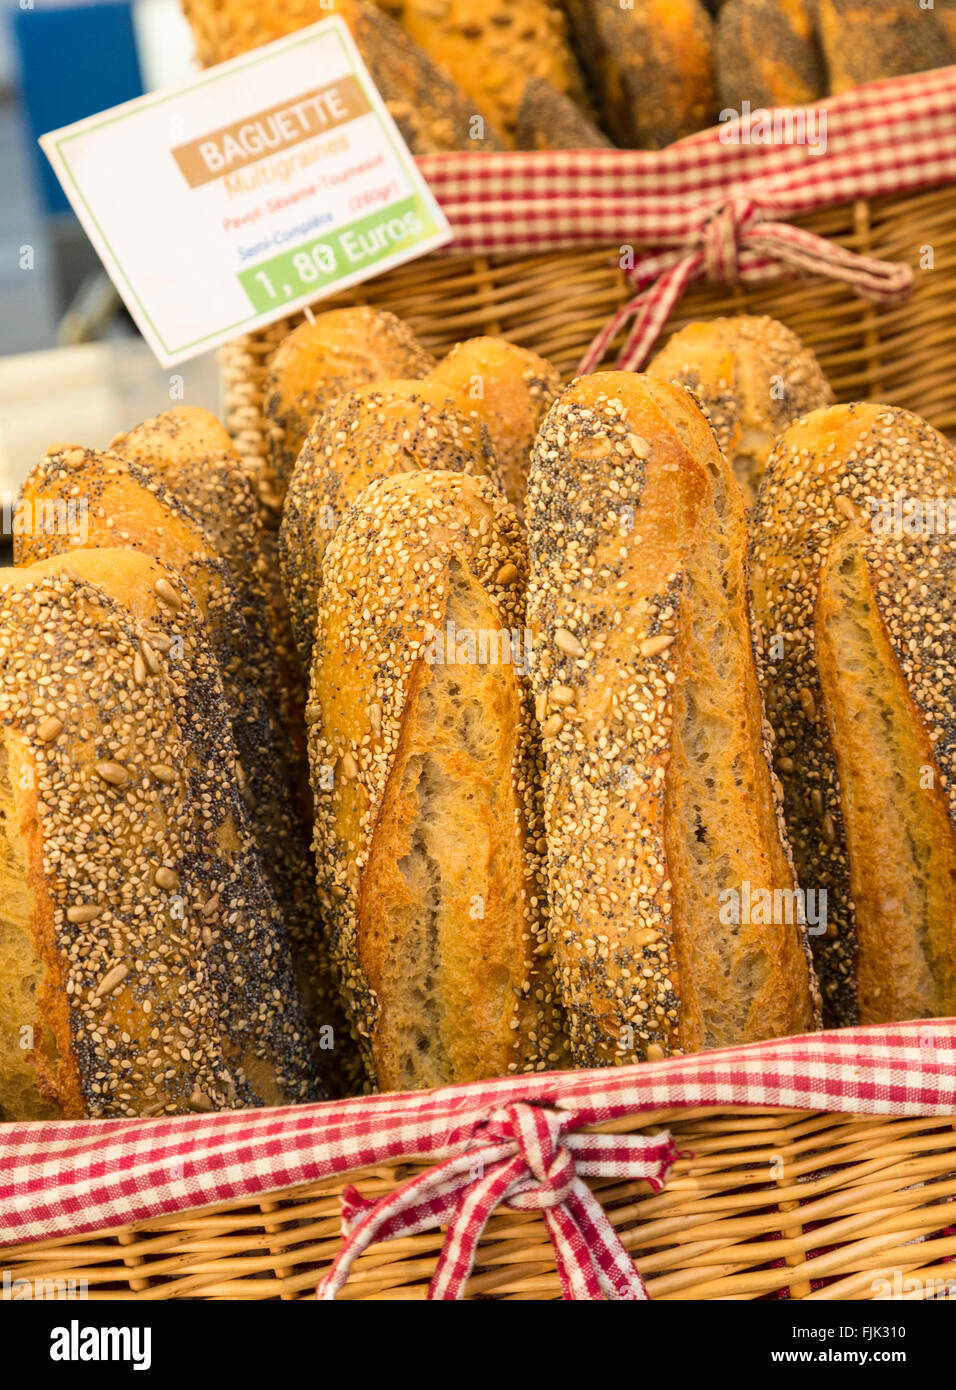 Typical French bread seeded baguettes displayed in wicker baskets at a local street market, Paris, France - Stock Image